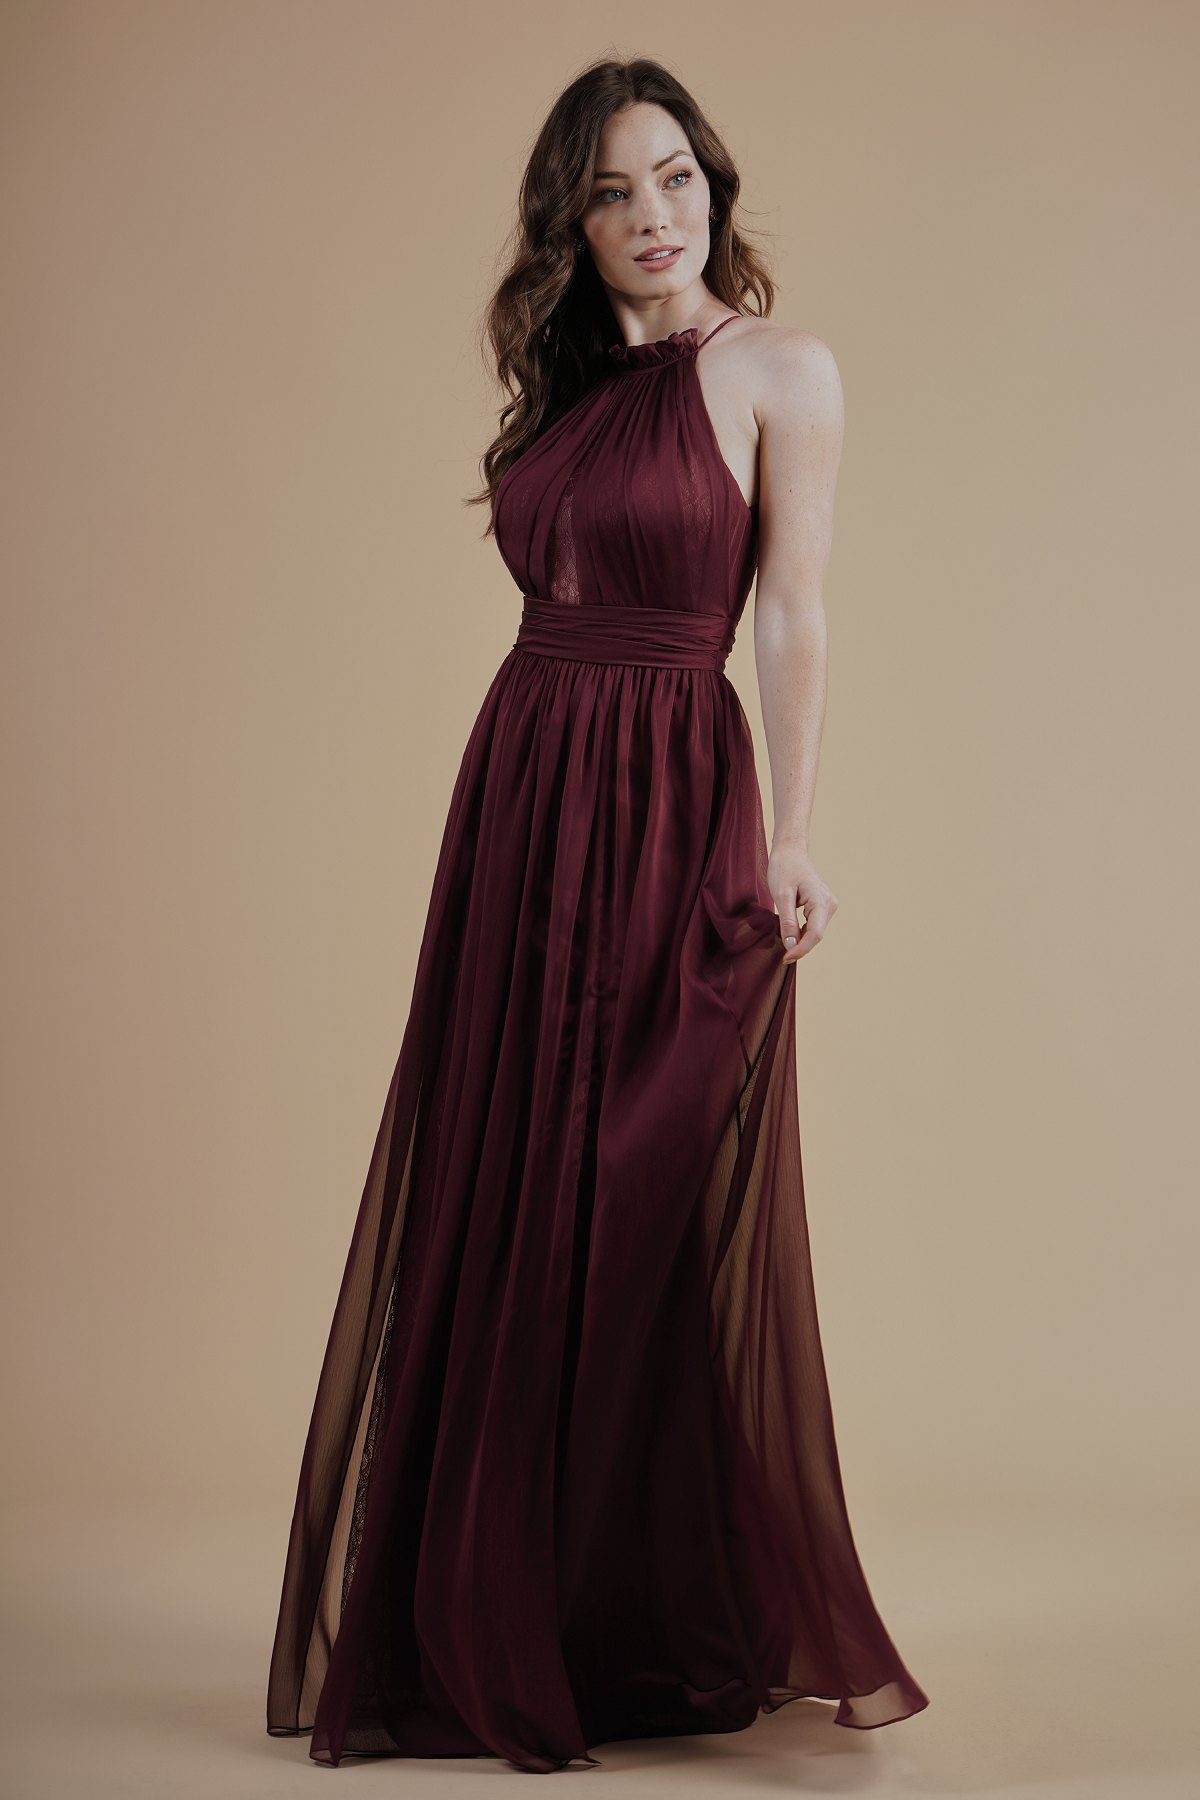 L214004 -  Gorgeous Belsoie Tiffany Chiffon and lace floor length bridesmaid dress with a beautifully ruffled high neckline. A lace back bodice, lace detail on the bodice, and detailed gathers throughout the dress.      Available in 16 colors